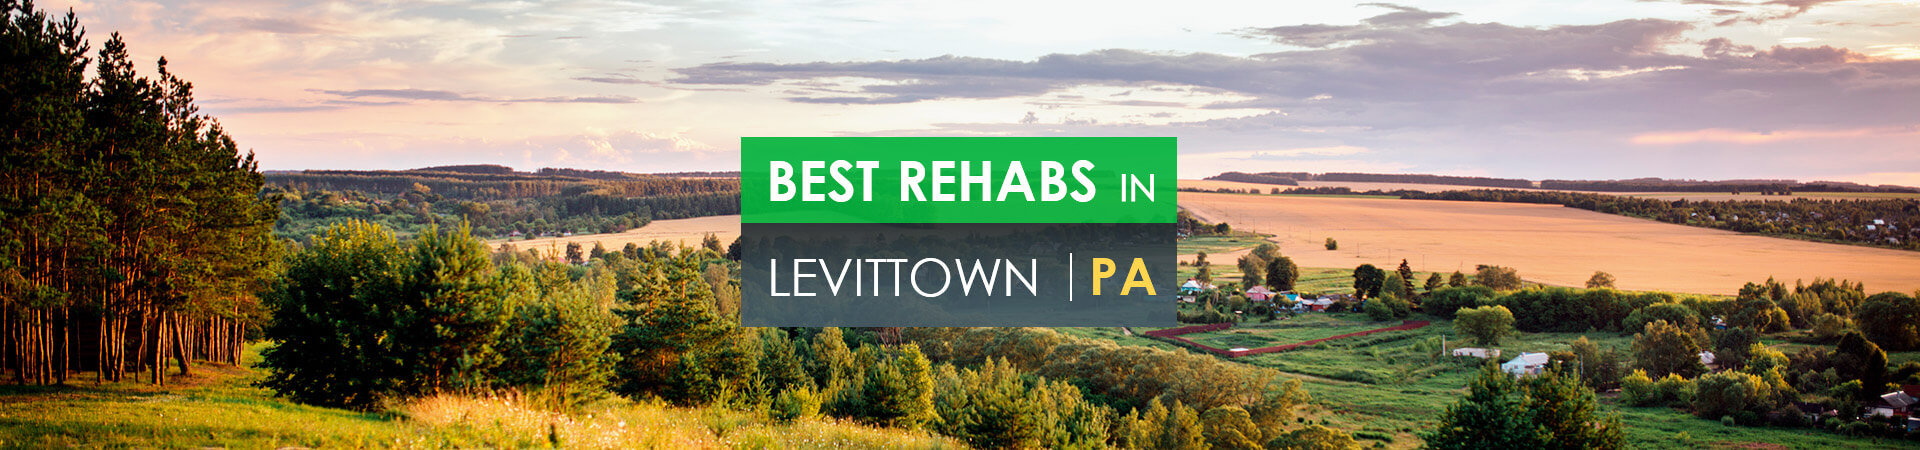 Best rehabs in Levittown, PA